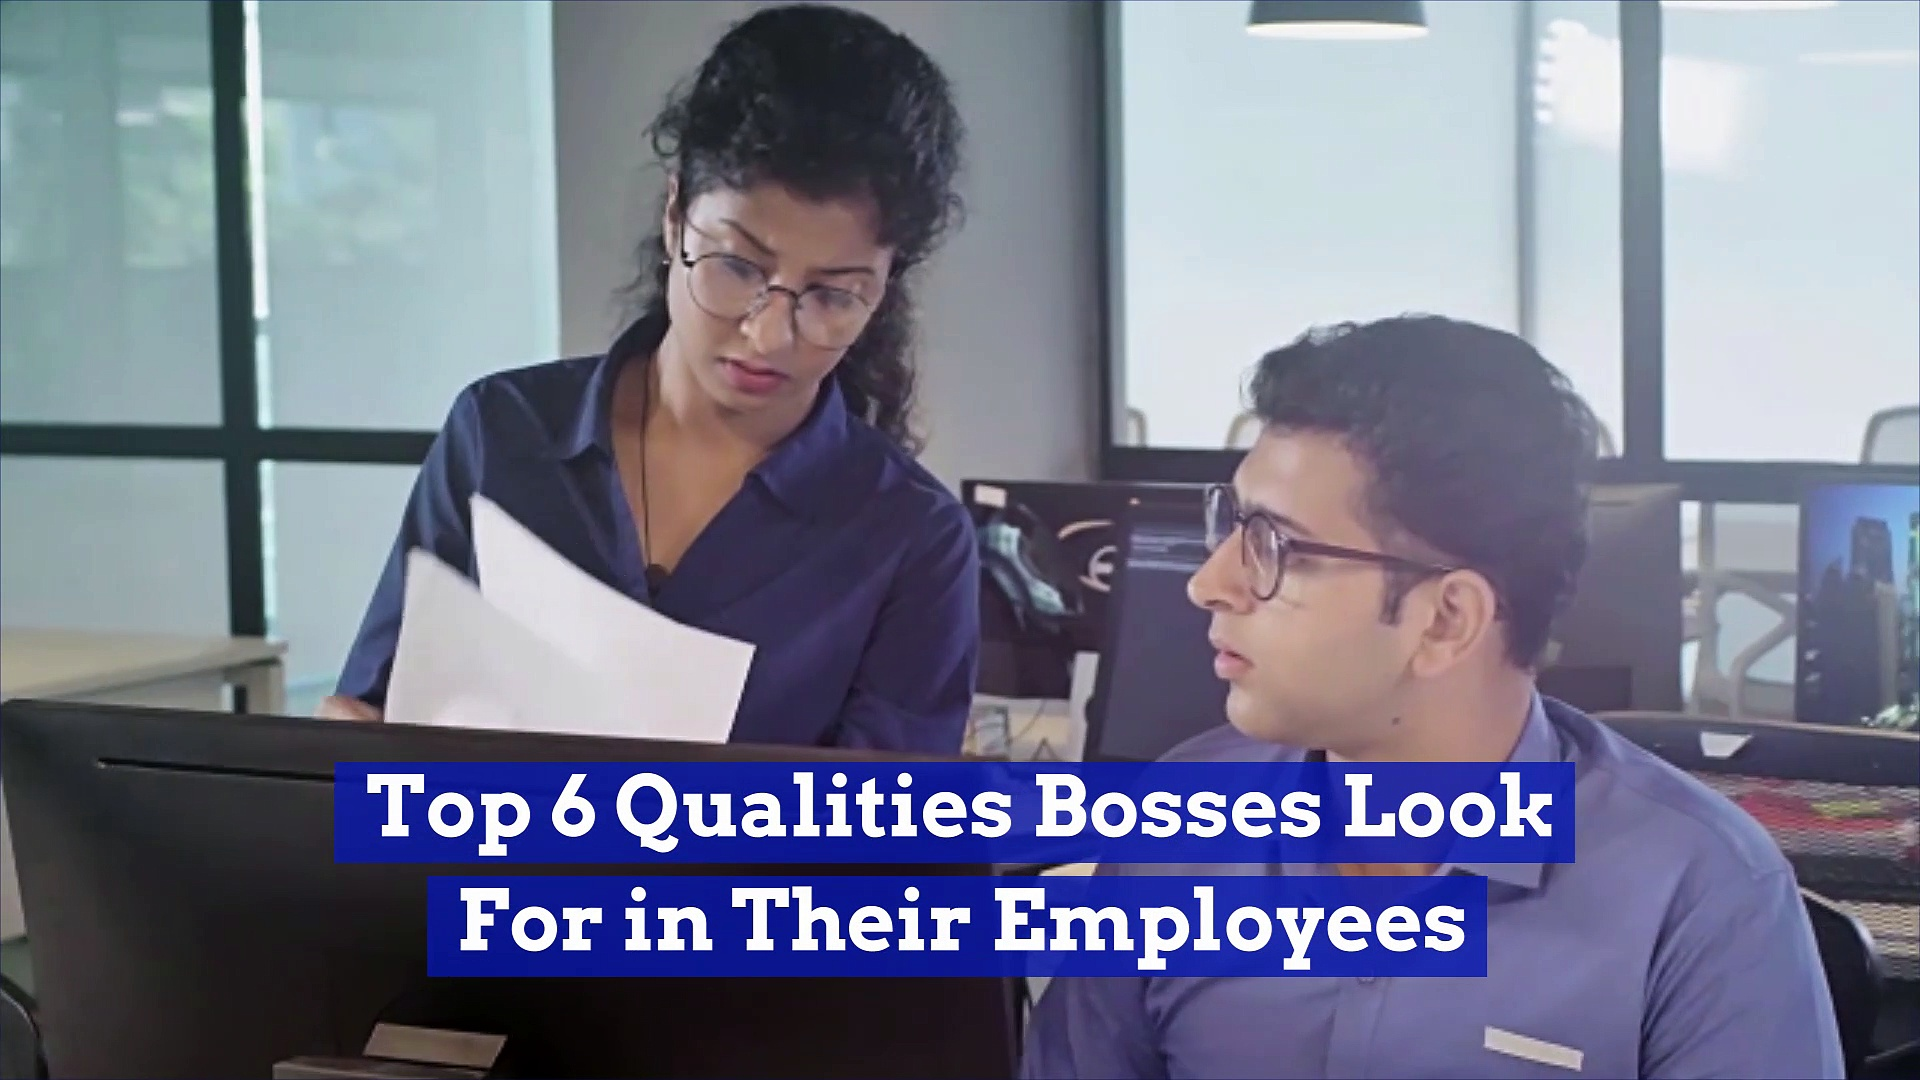 Top 6 Qualities Bosses Look For in Their Employees (National Boss's Day)